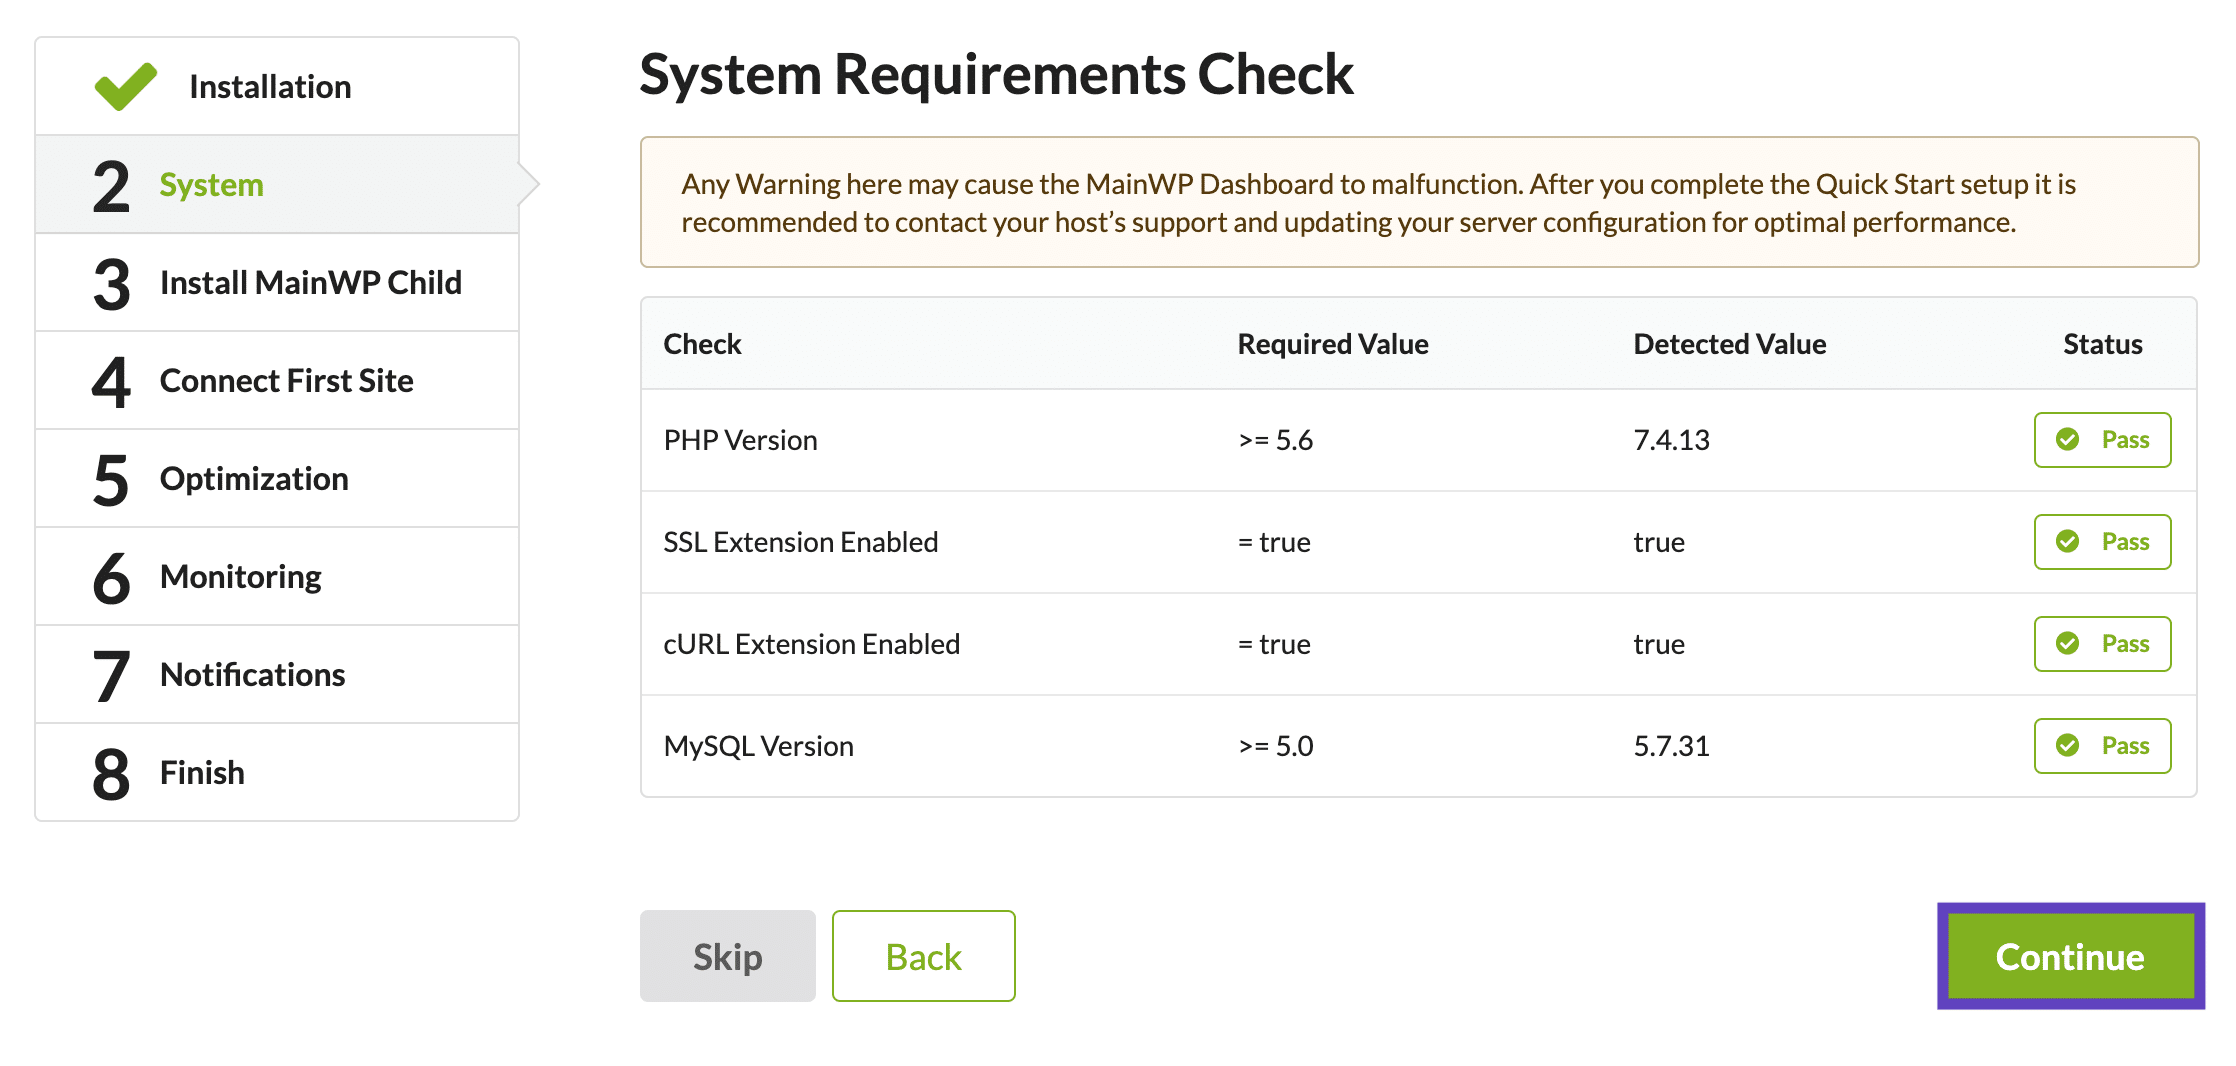 System Requirements Check